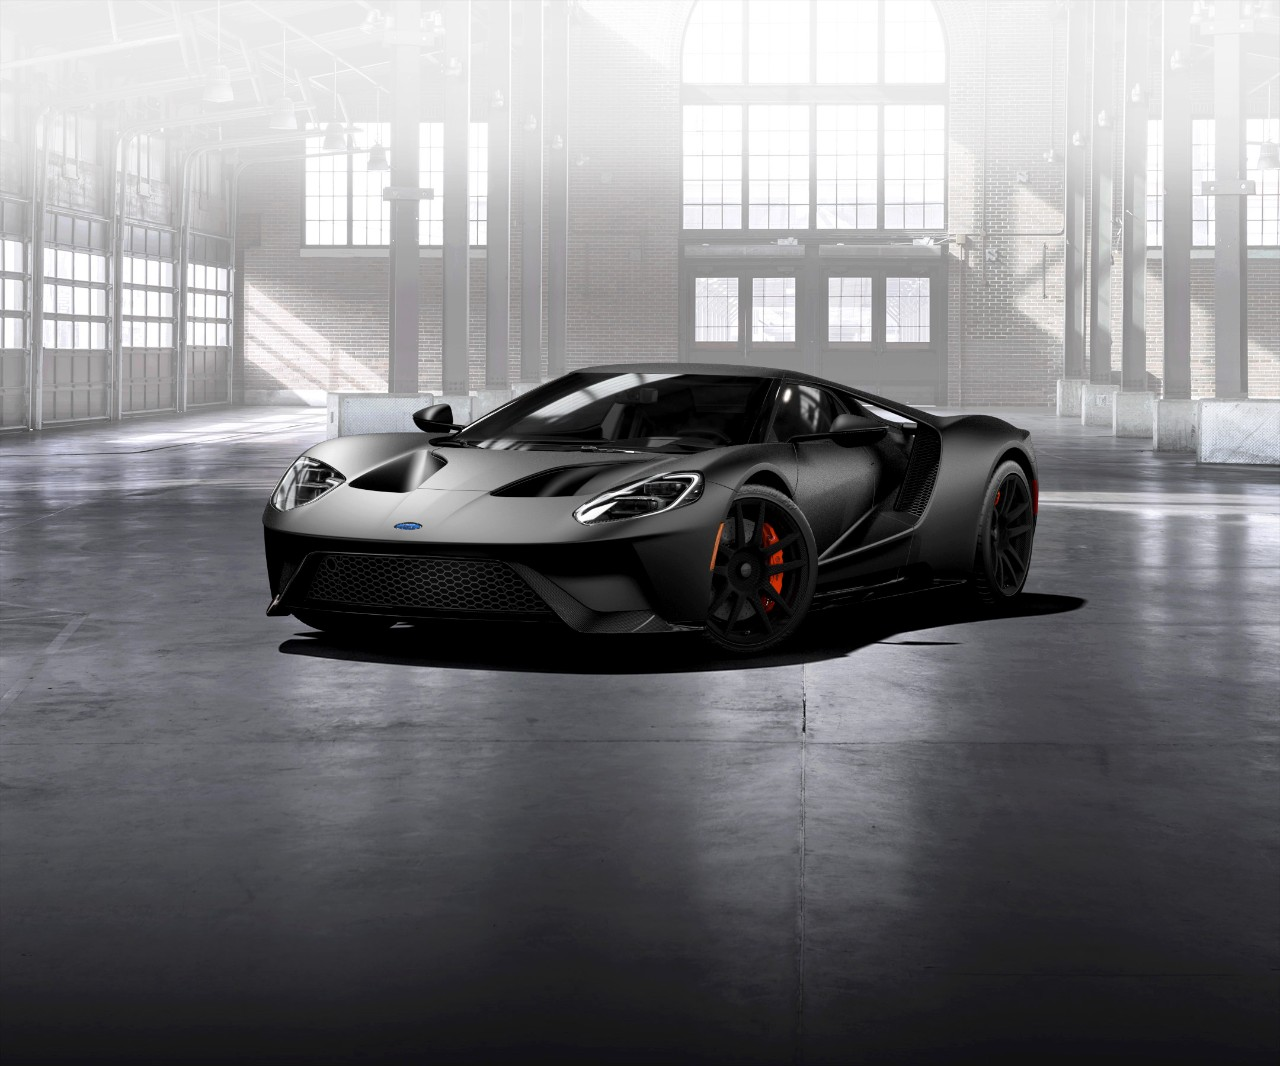 Ford GT Demand Outstrips Supply by 1300%